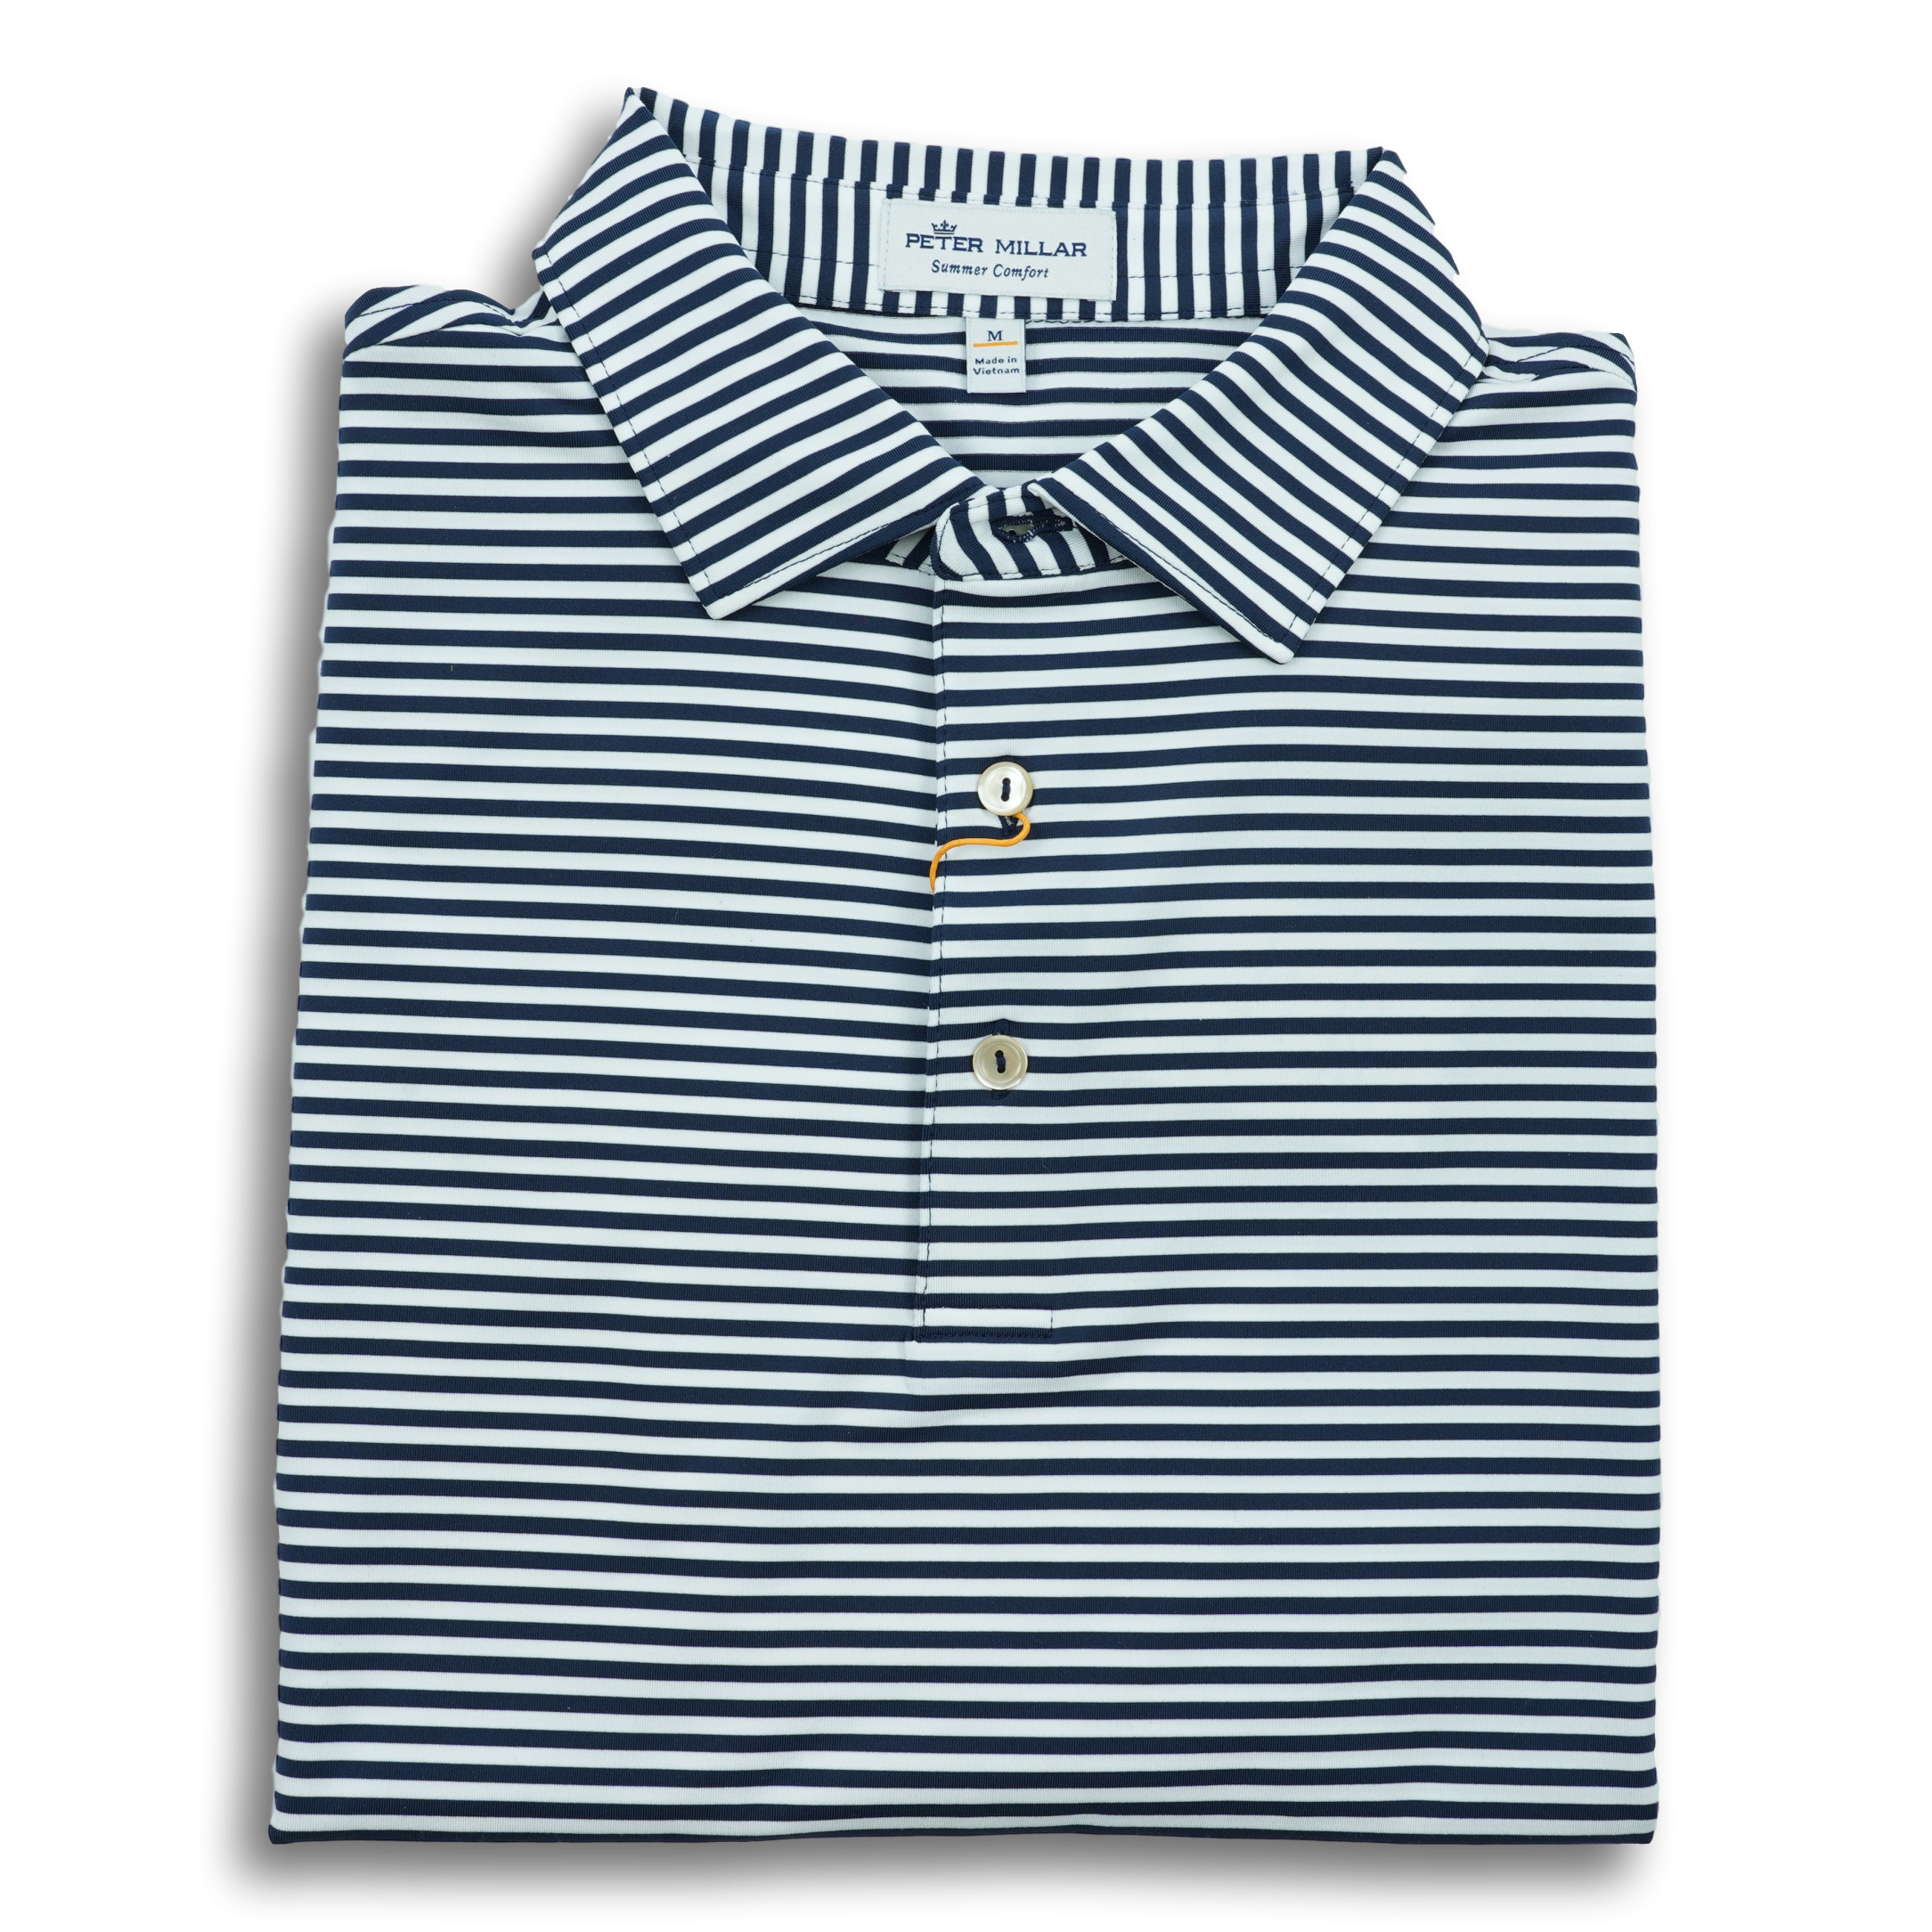 Crafty Performance Polo Shirt